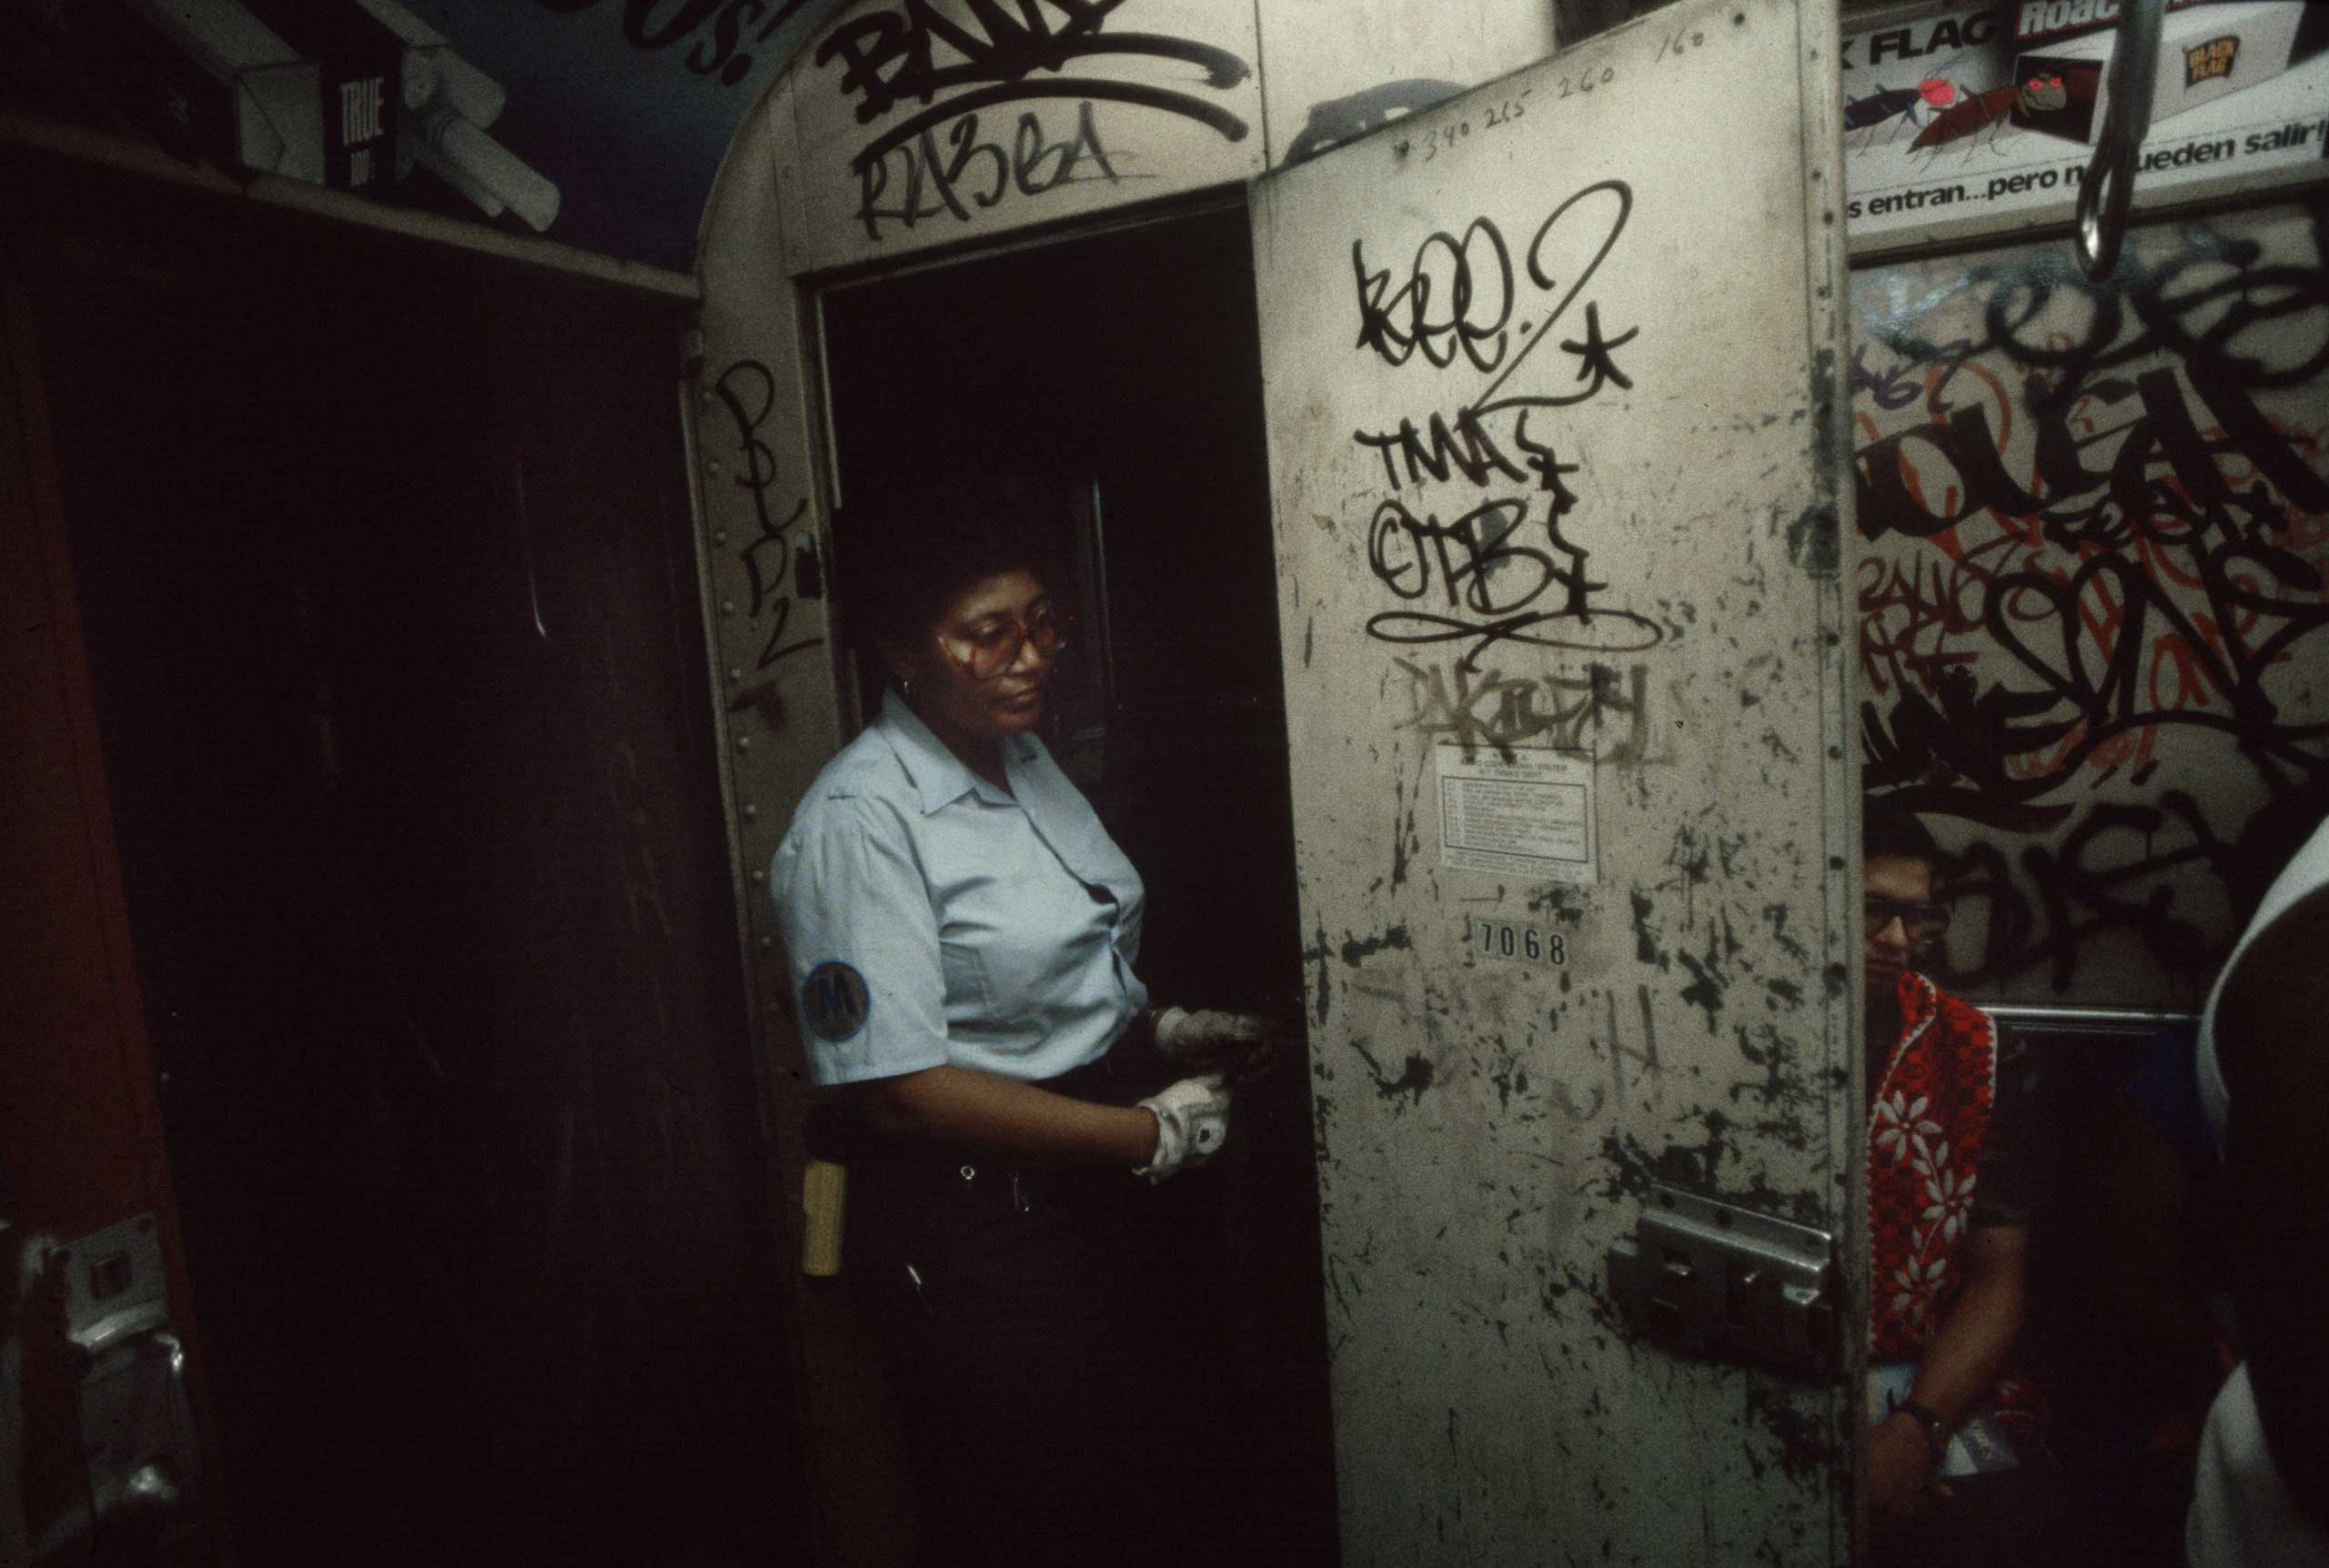 A subway conductor exits the conductor's cabin, 1981.